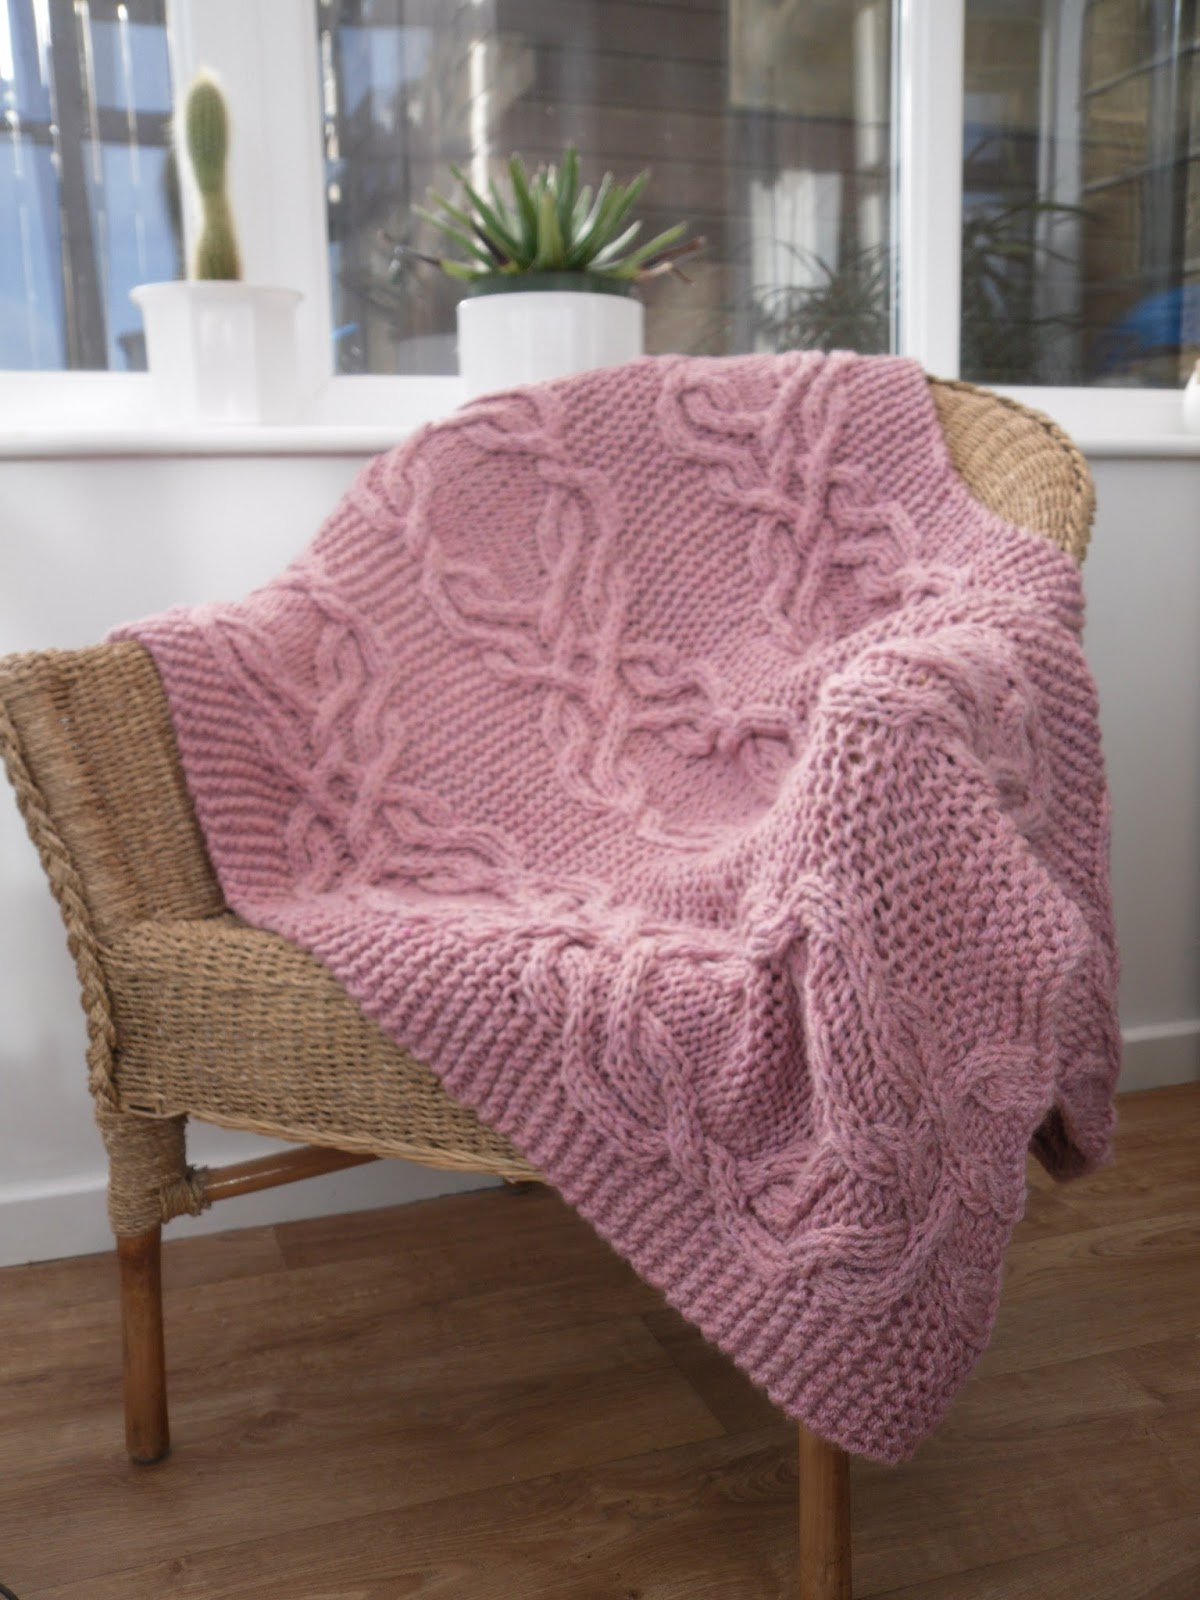 Knitted Lap Blanket Patterns : The Feminine Touch UK Knitting / Felting blog: Free Pattern - Cable Lap Bla...